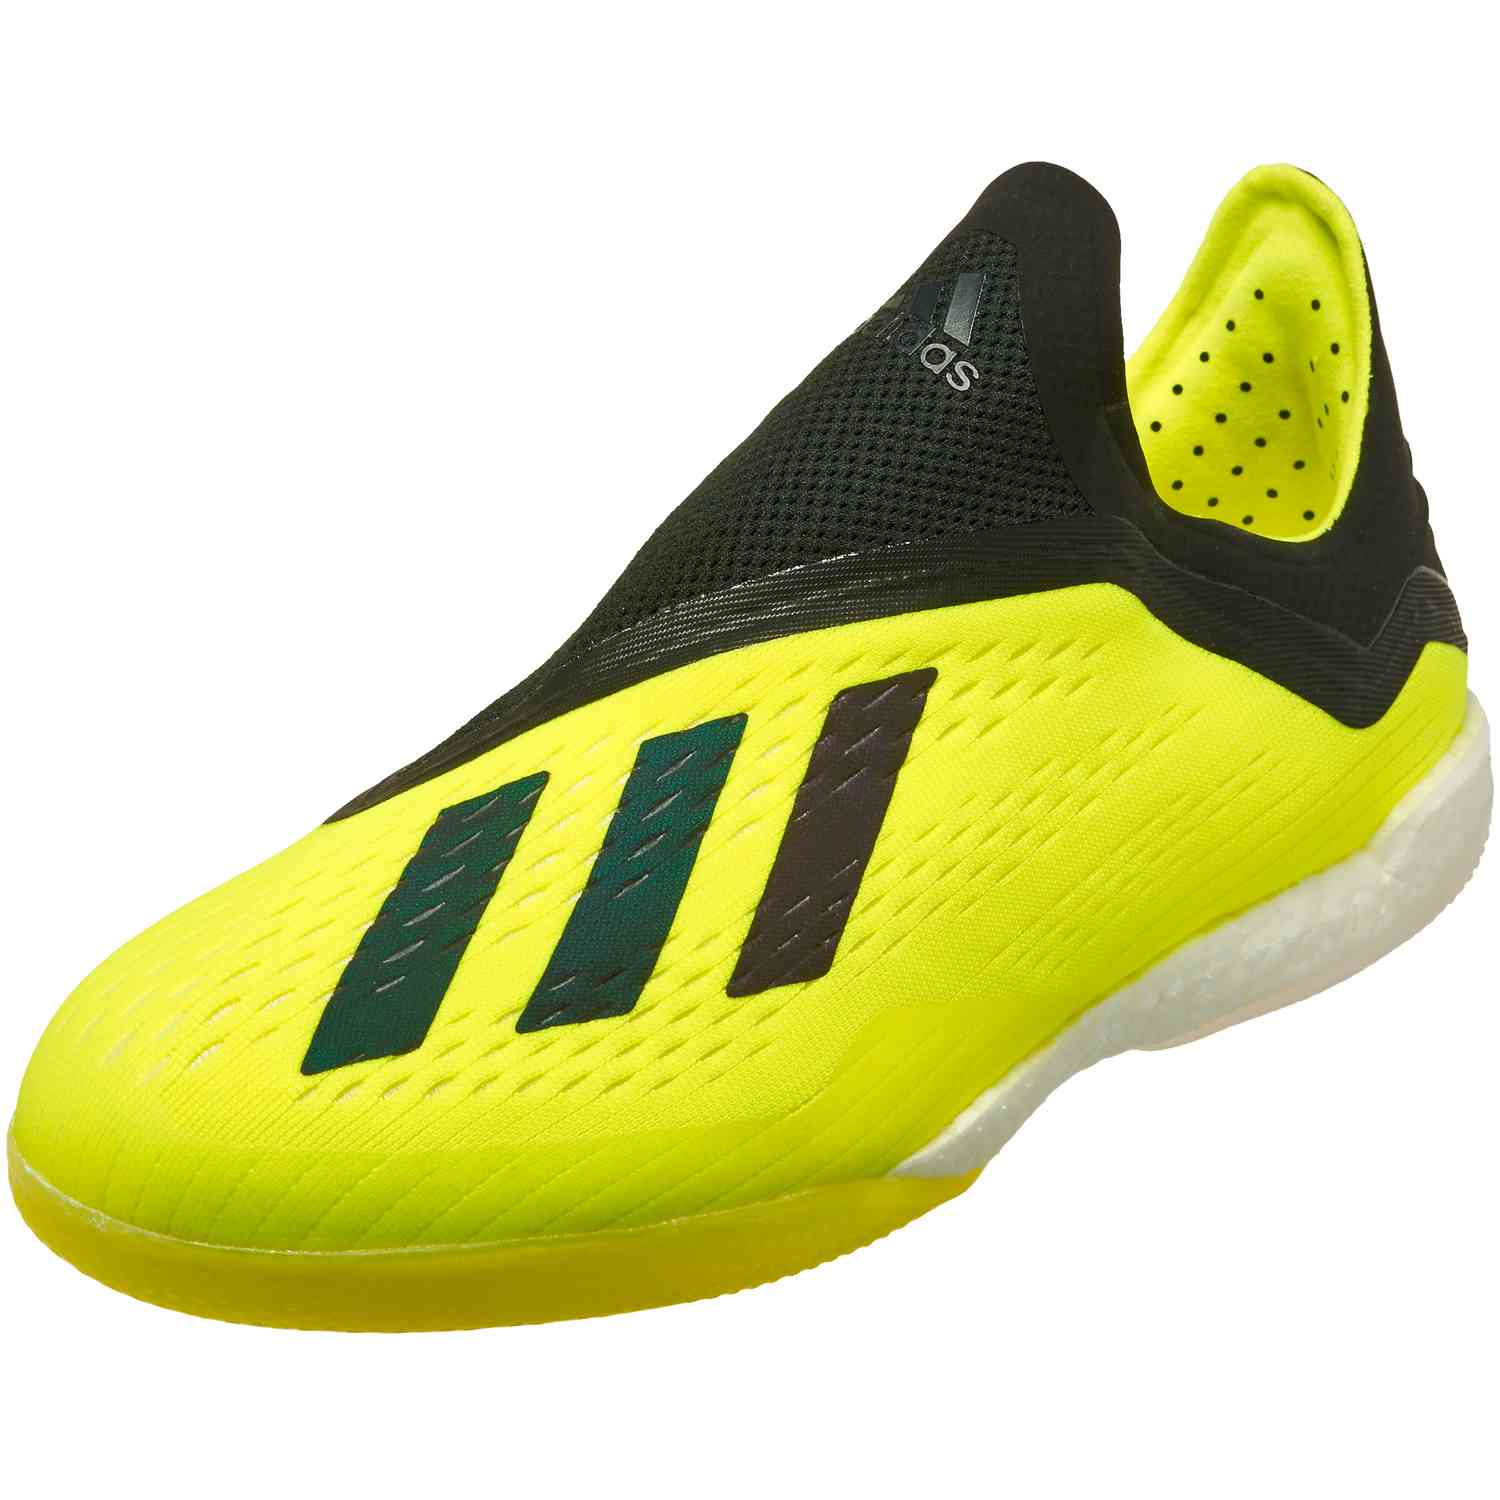 uk availability 279fe 6e031 adidas X Tango 18+ IN – Team Mode